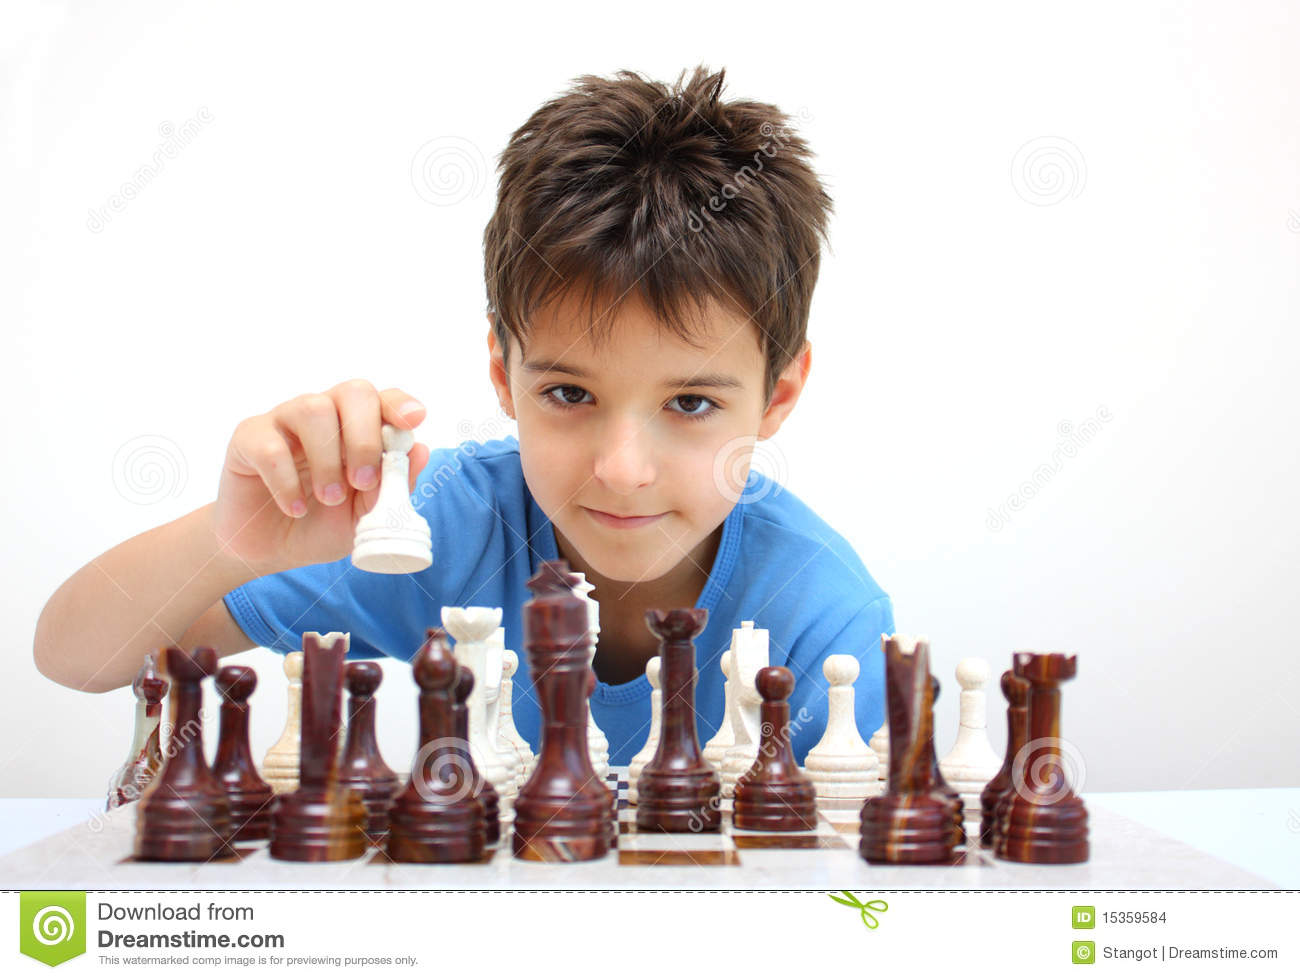 play a 1-hour chess game with you online